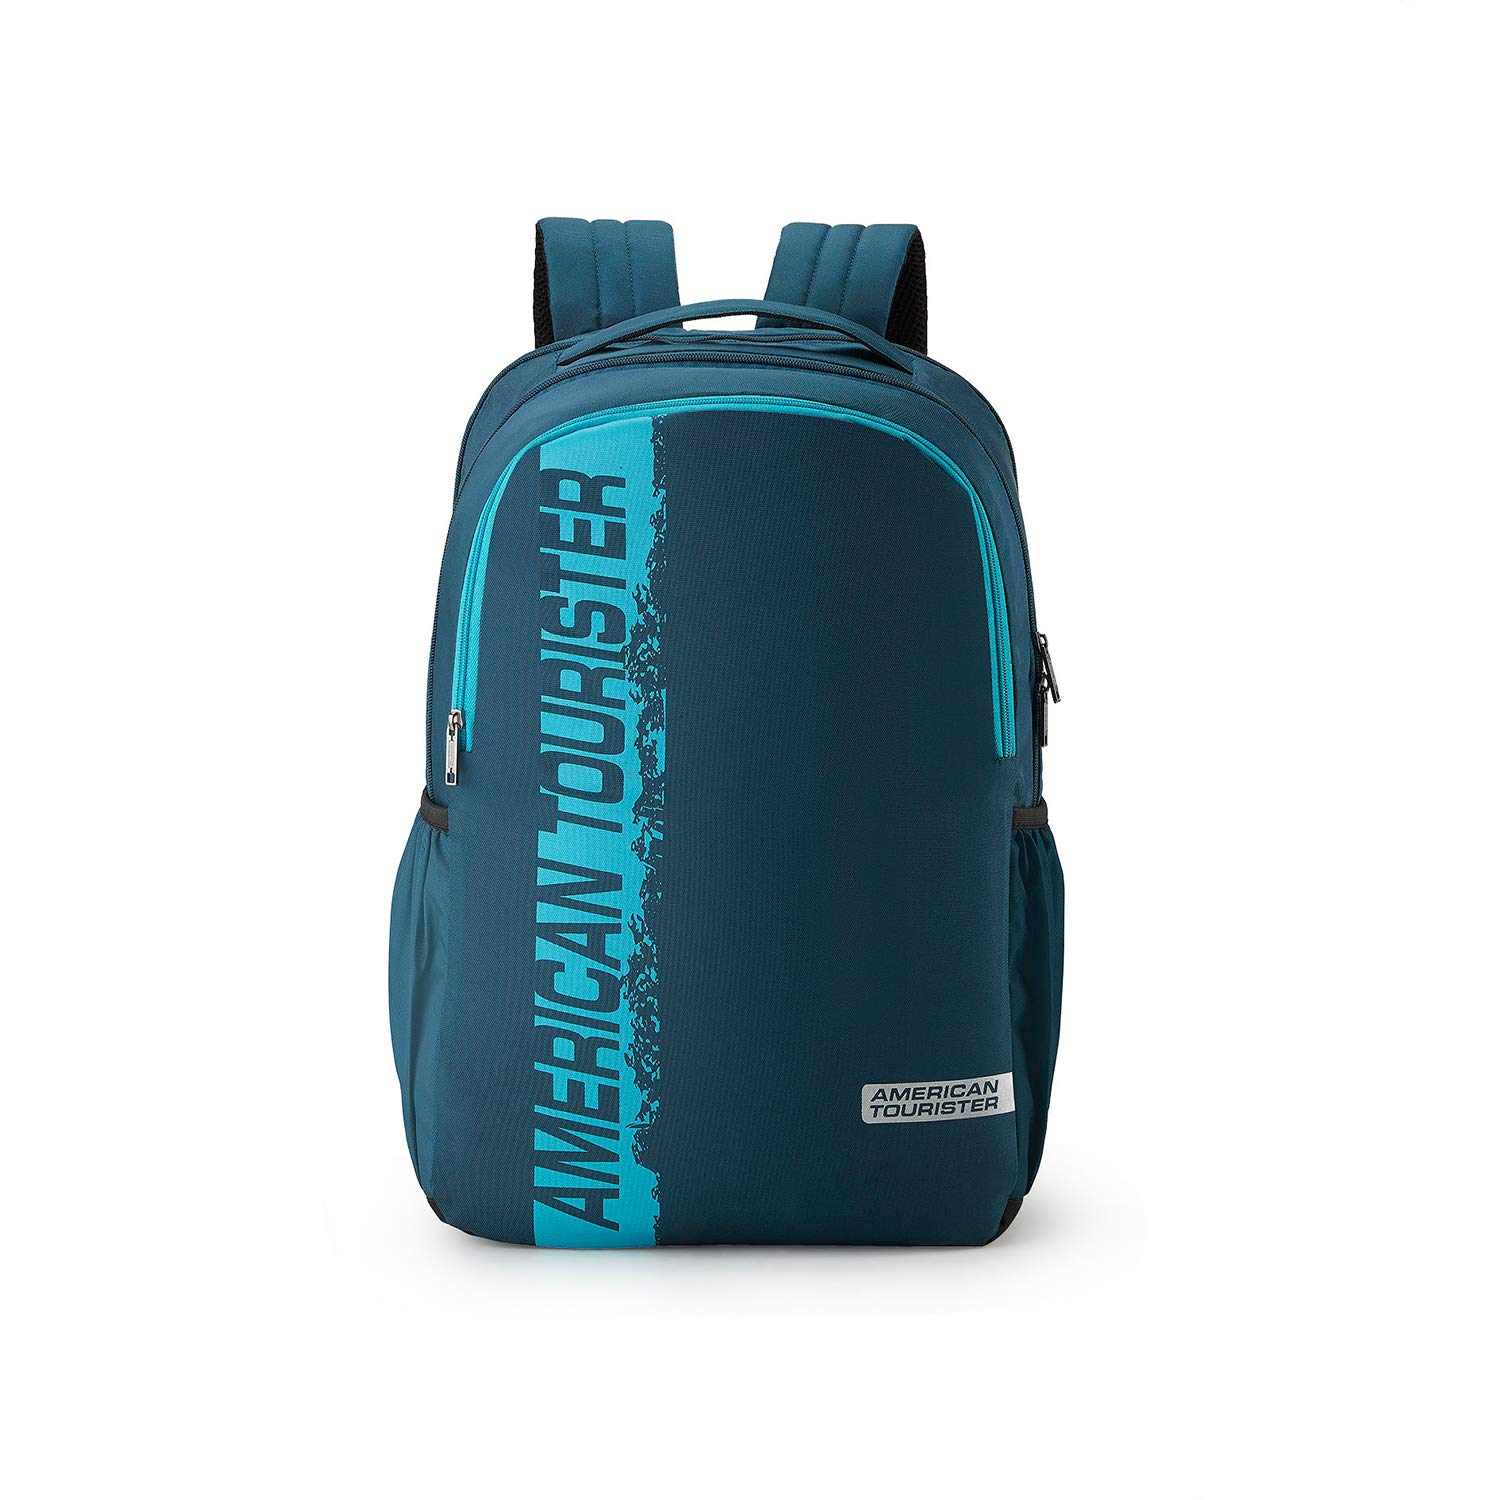 American Tourister Spin 49 cms Teal Laptop Backpack